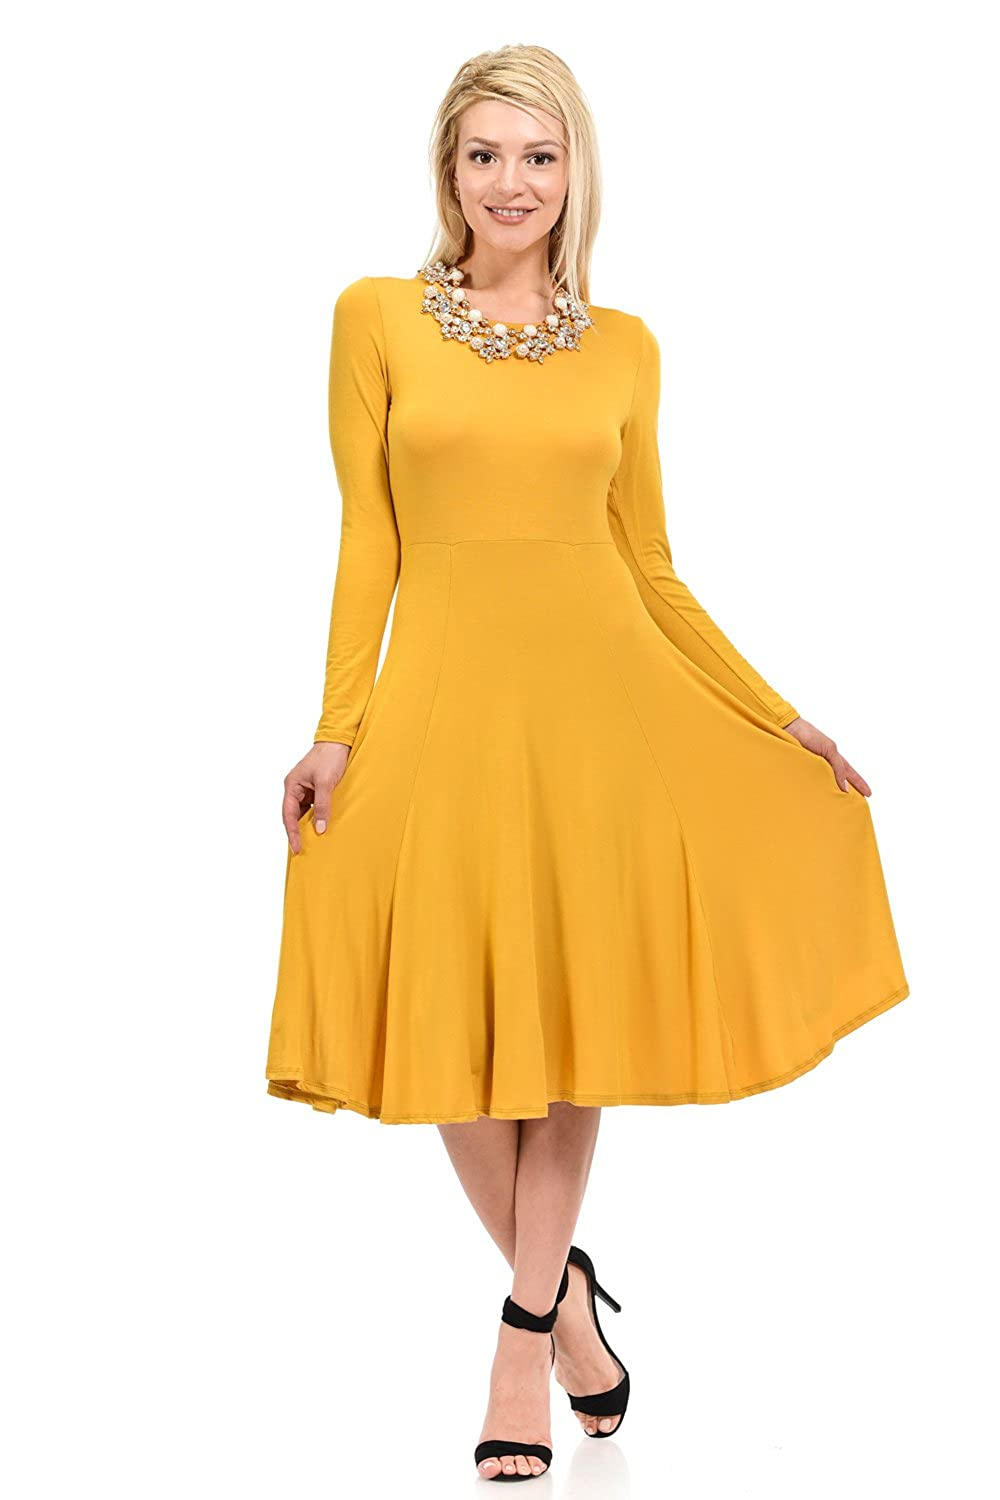 ac6ac36fd214 This elegant dress features full skirt, long sleeves, rounded neckline and  skater silhouette. It is made of soft jersey knit that has great stretch  and ...